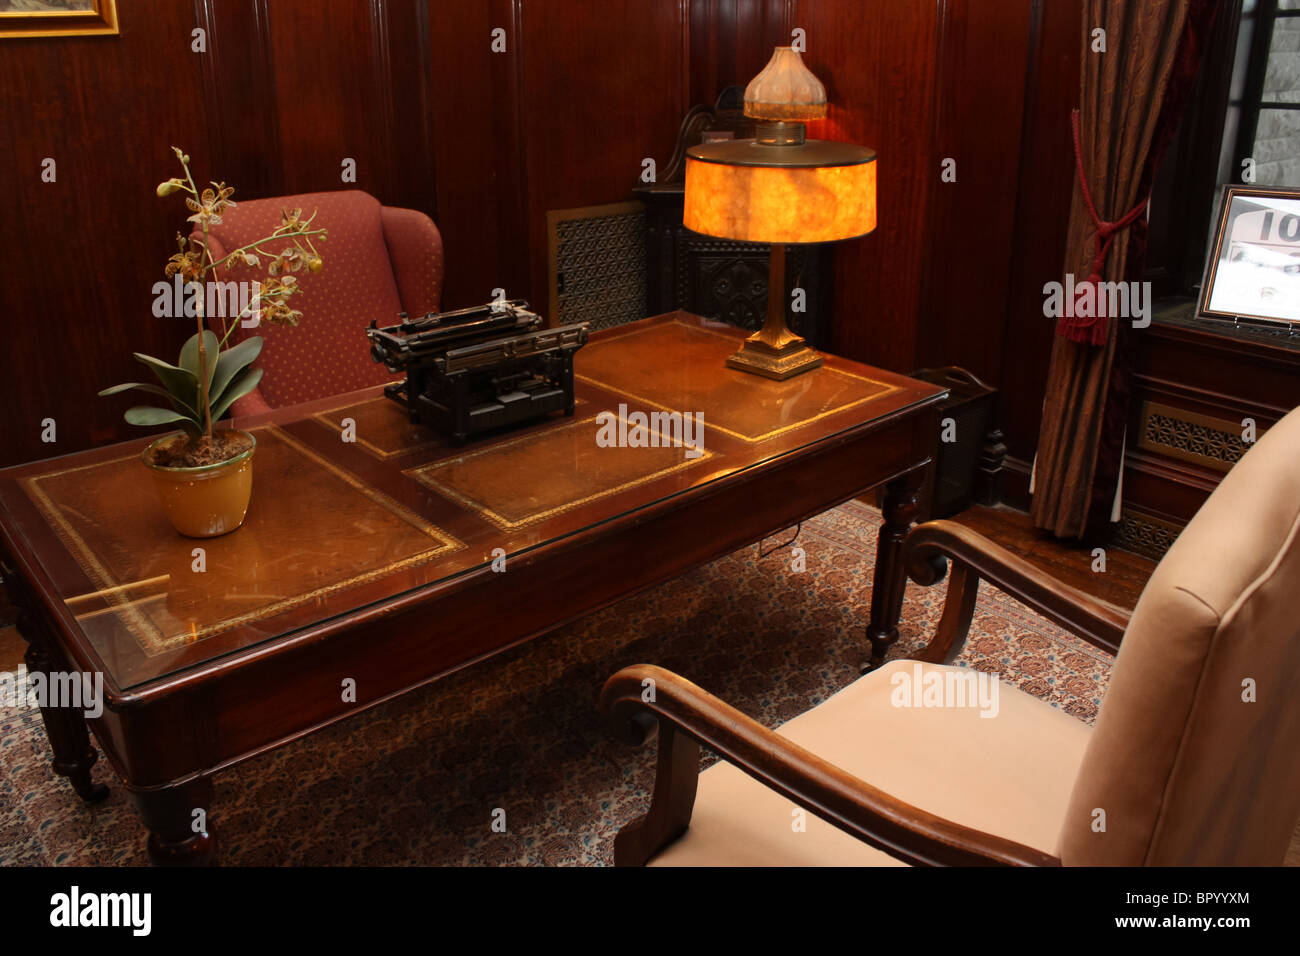 old office chair and table steelcase leap v1 vs v2 retro vintage desk typewriter lamp stock photo